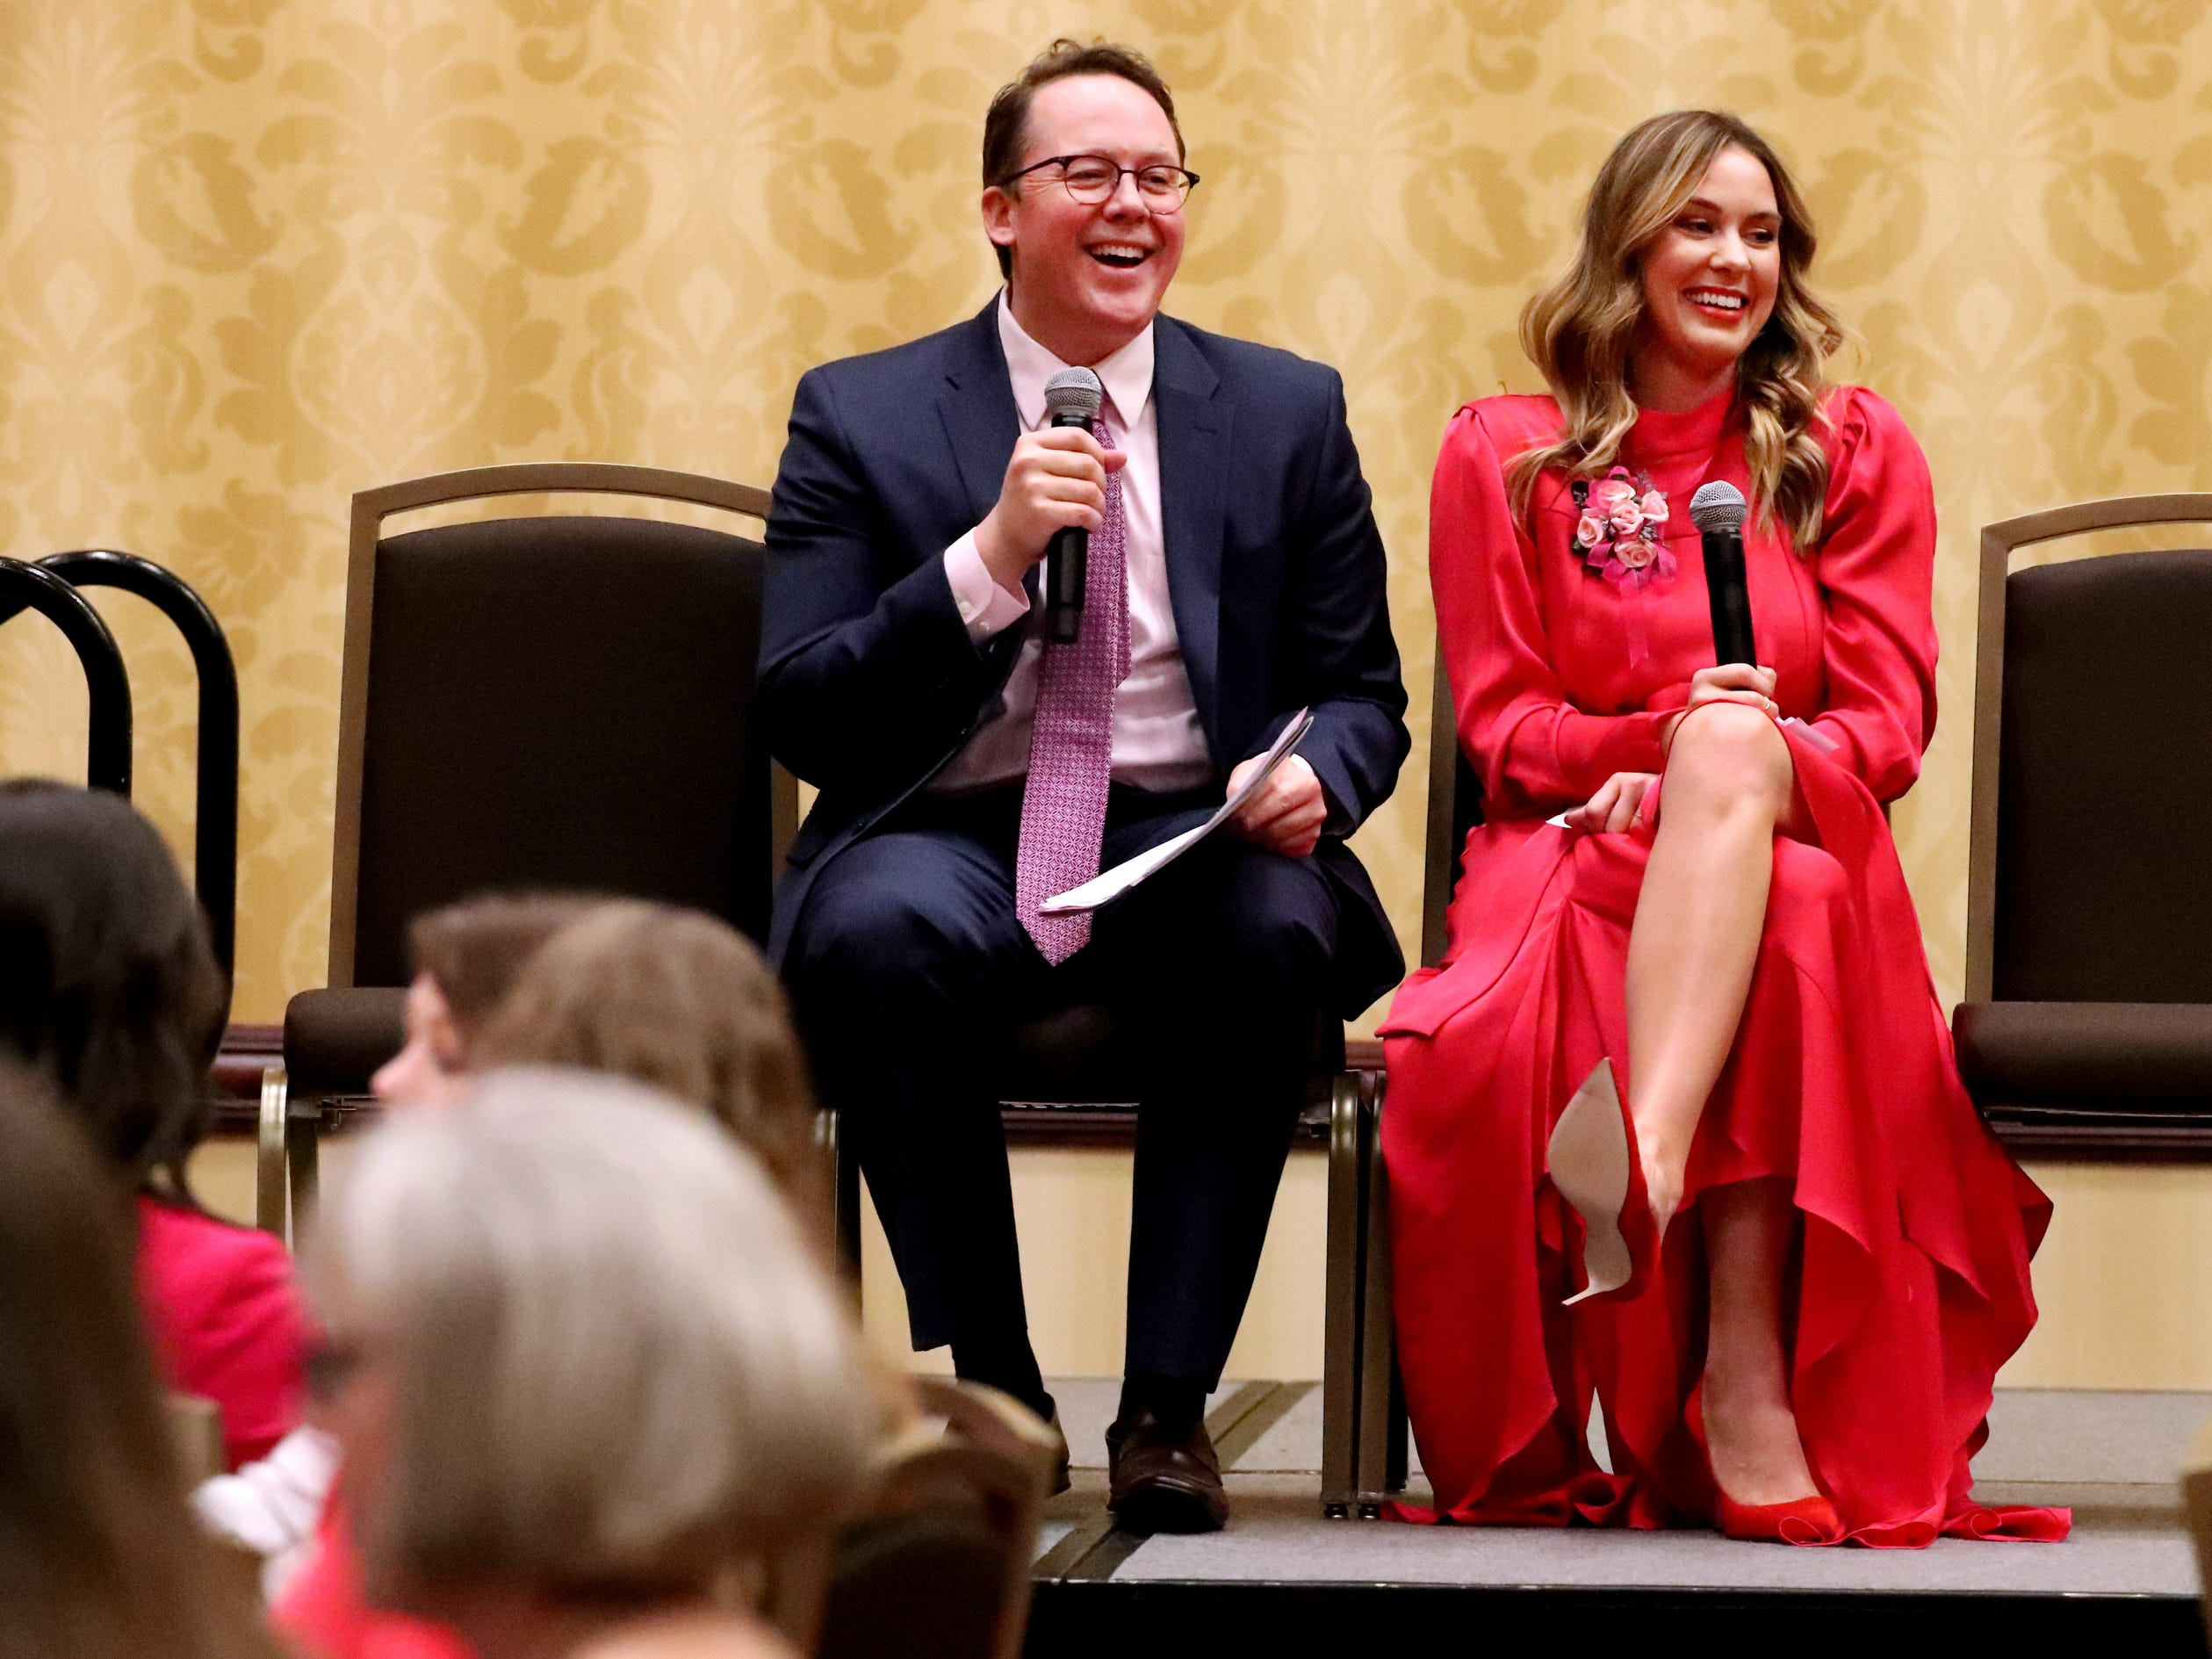 Brian Barry, Publisher of the Nashville Lifestyles and Murfreesboro Magazine., left asks questions of the keynote speaker Elizabeth Allen, owner of e.Allen boutiques during Murfreesboro Magazine's 2019 Women in Business Luncheon on Tuesday, March 12, 2019, at the Embassy Suites Murfreesboro.